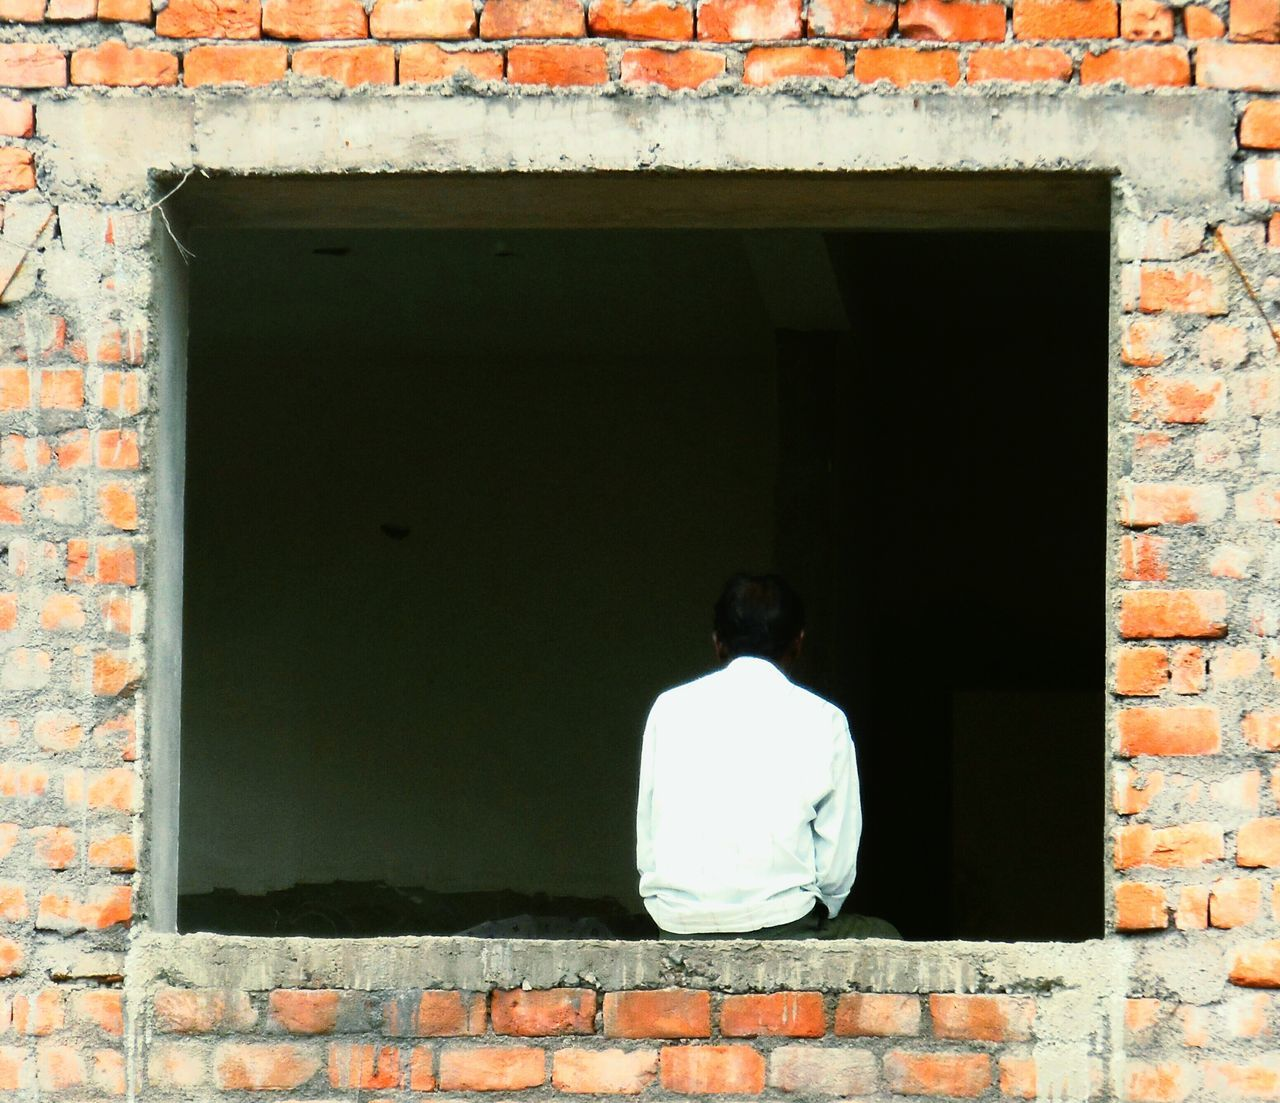 AnaGraph™ One Person Day Nikonphotography India Bricks Red Framed Outdoors One Man Only Frame It! Building Thoughts Thoughtful Deep Deep Thought Nikon Missing Cent